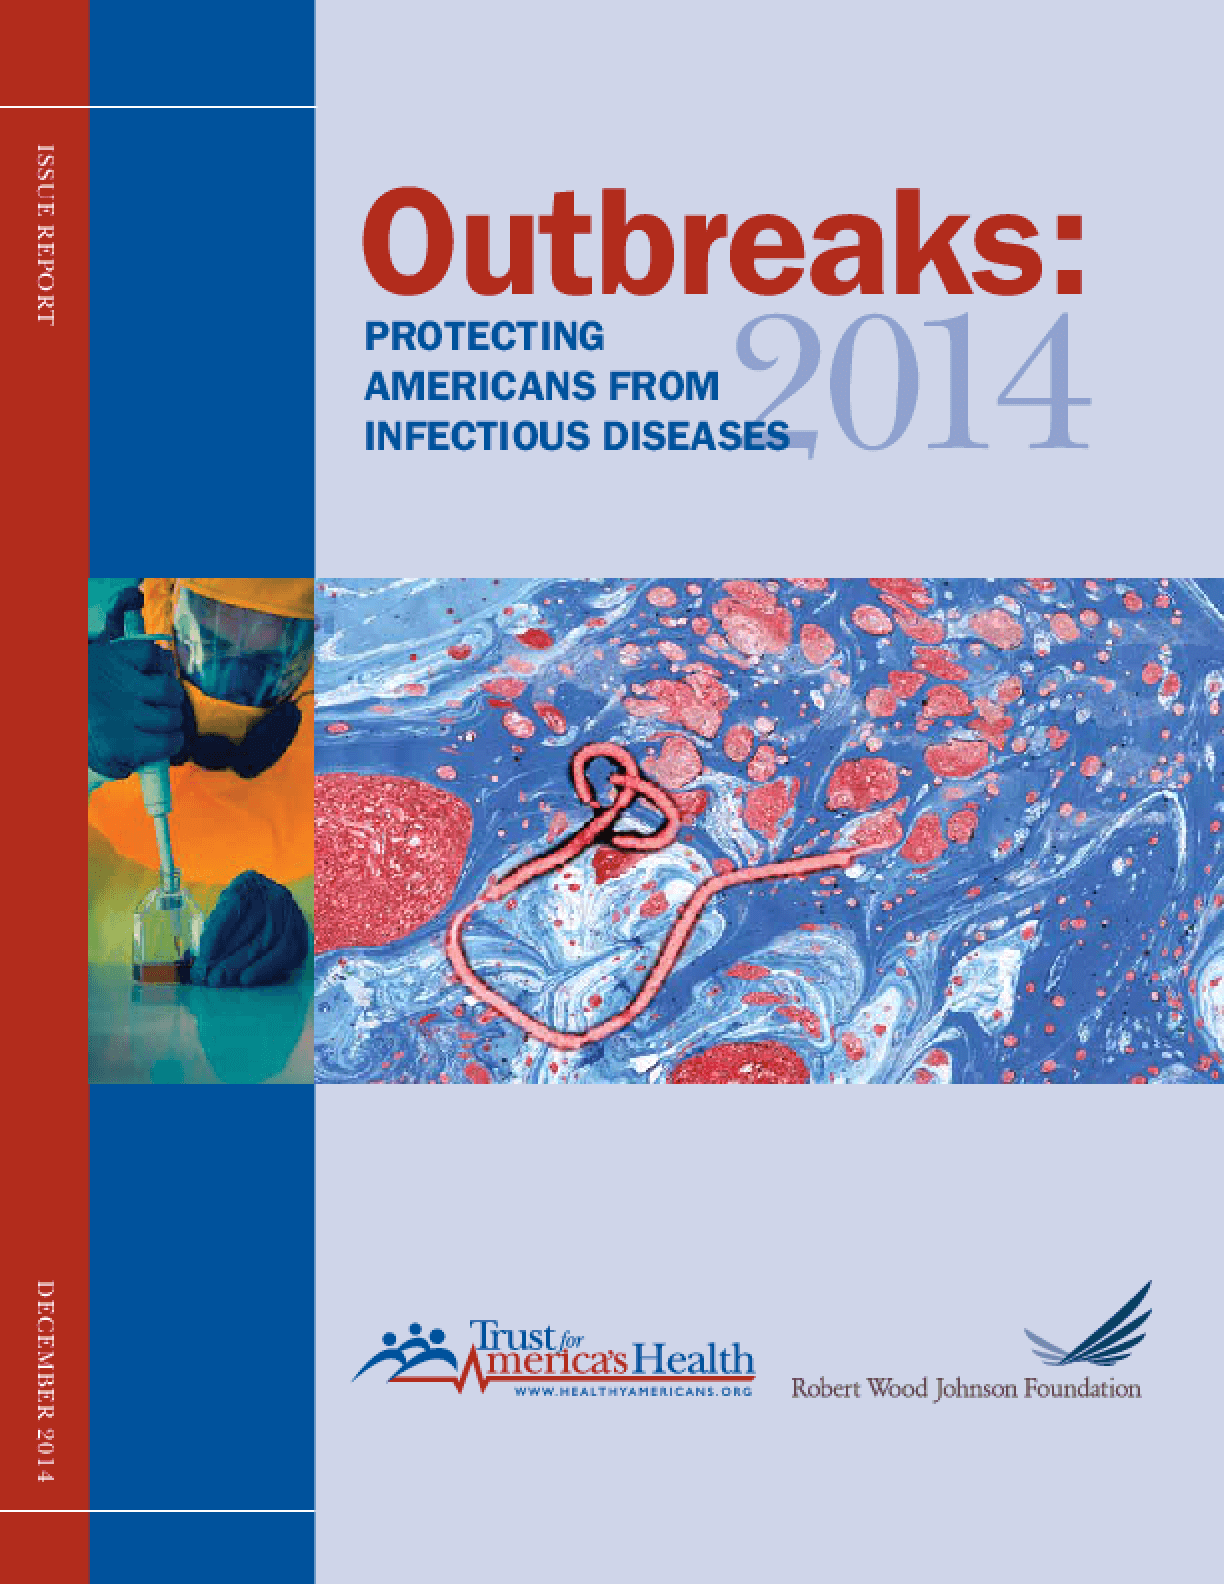 Outbreaks: Protecting Americans From Infectious Diseases 2014